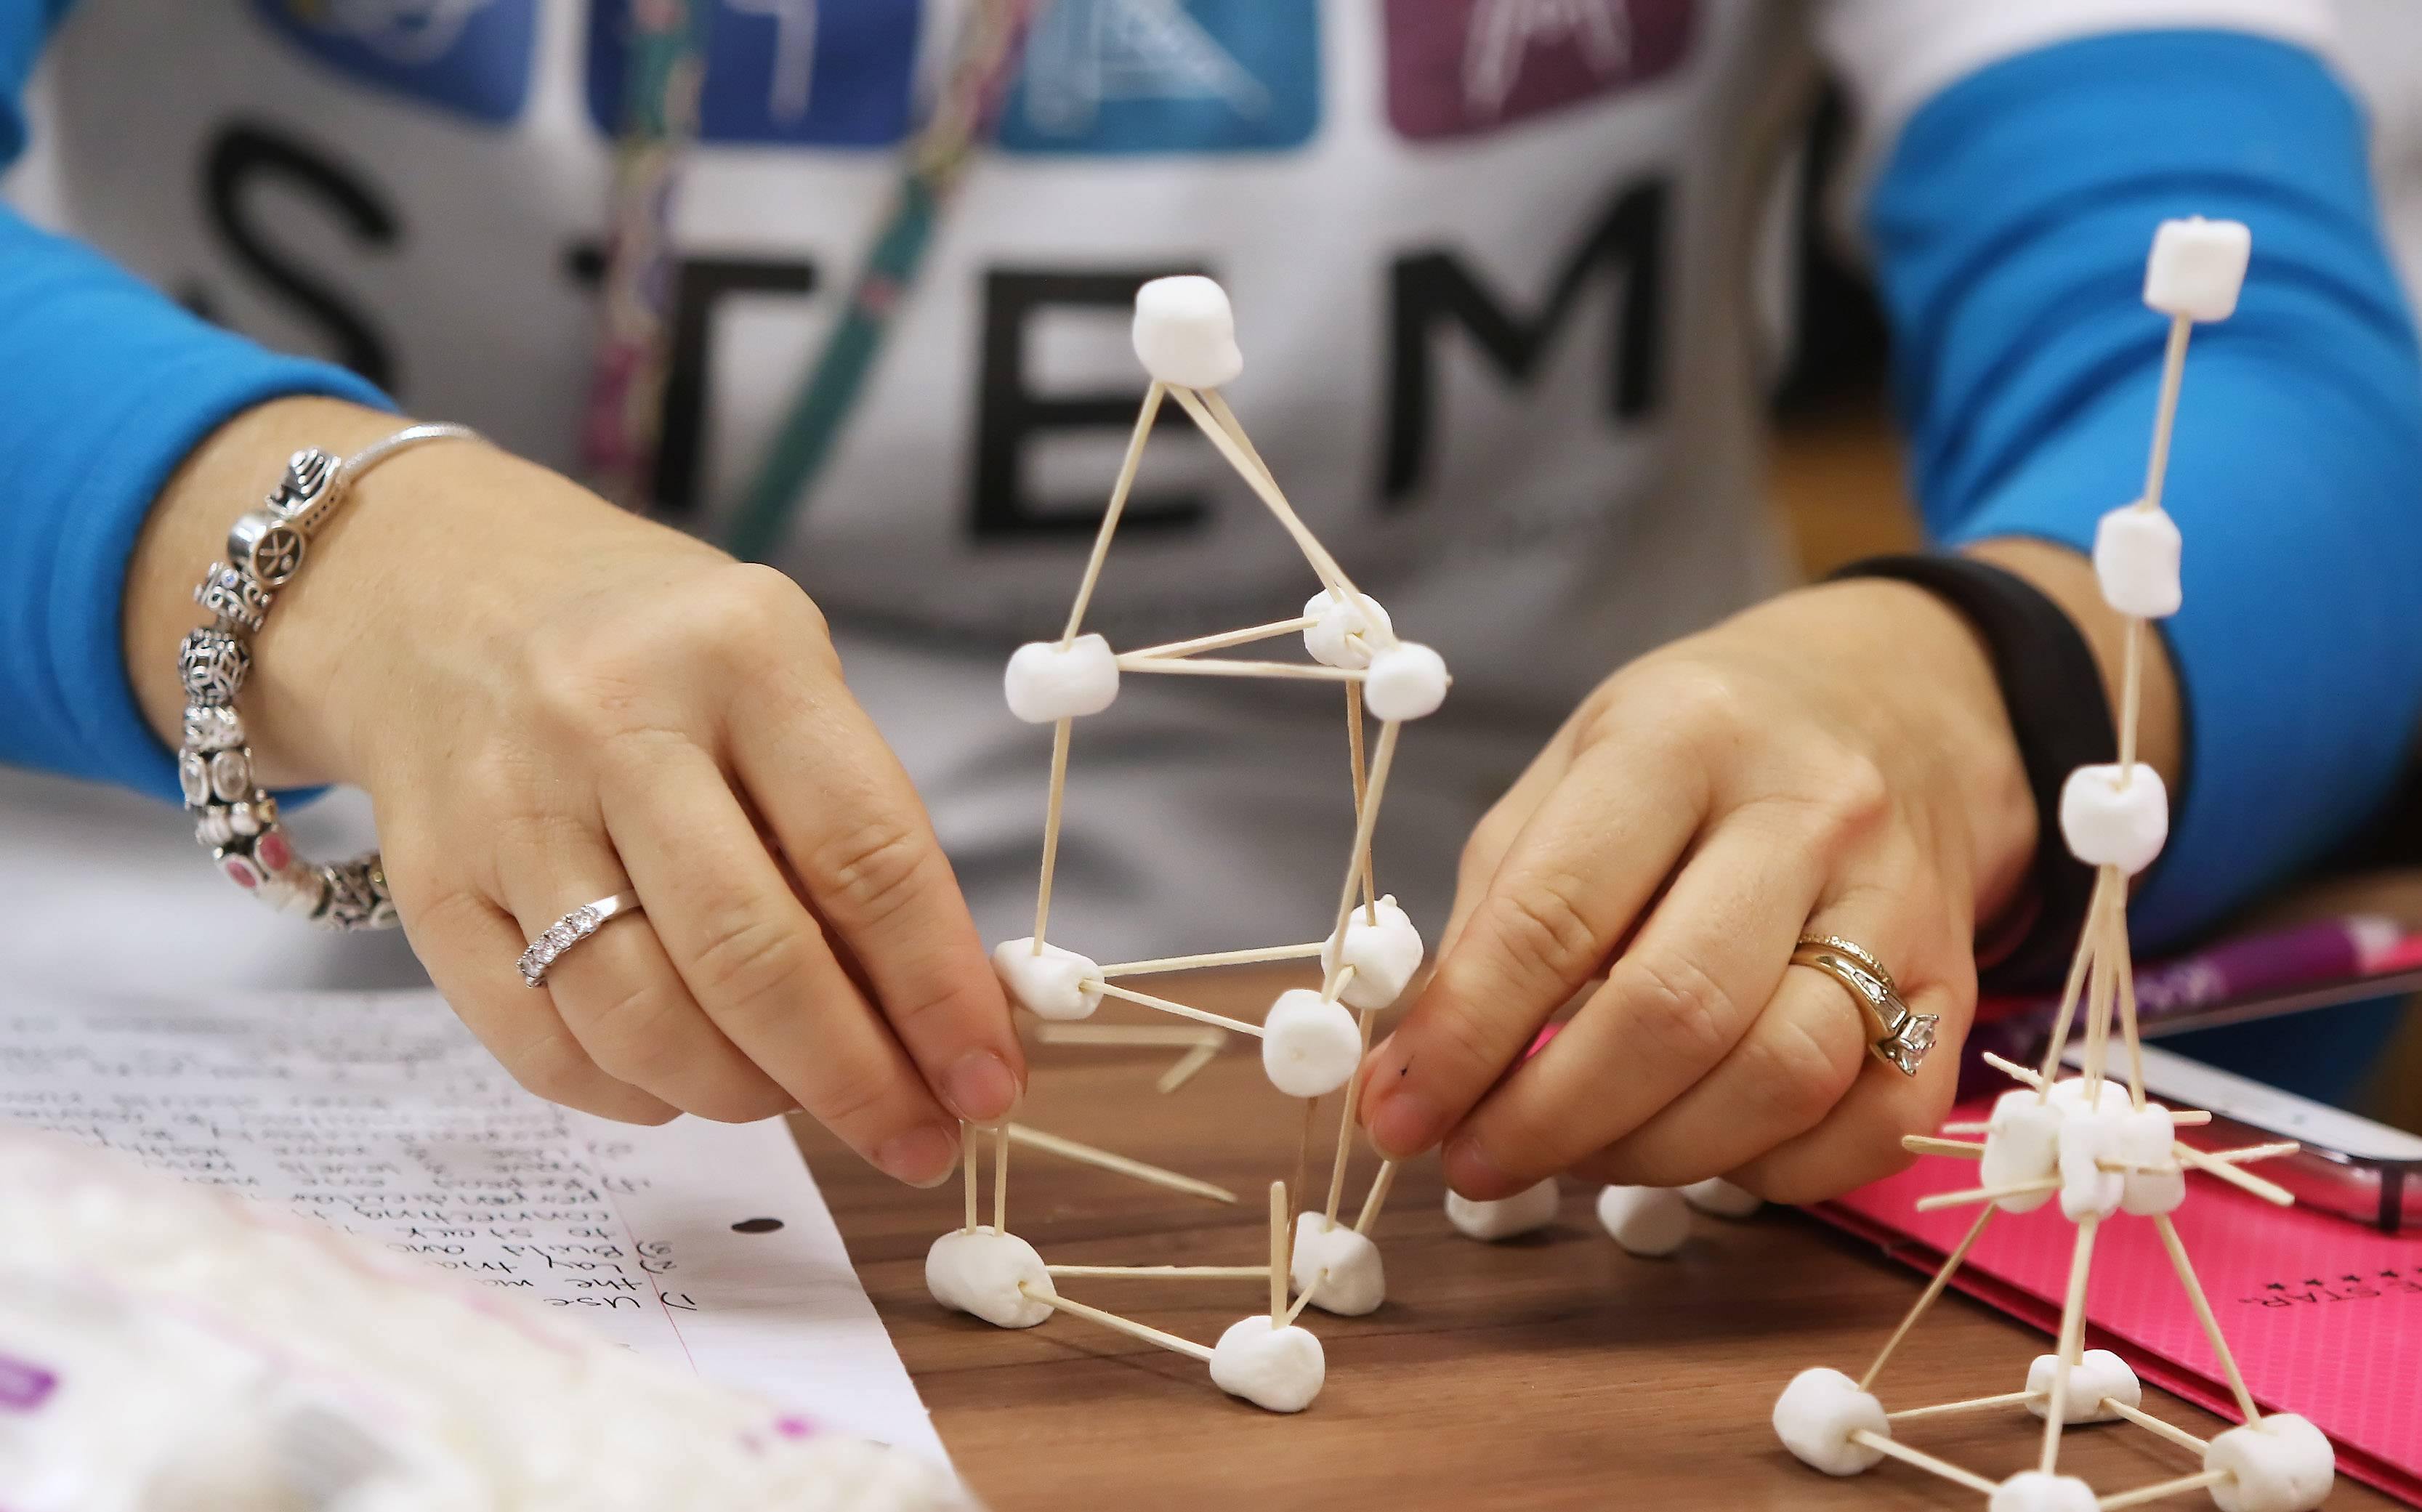 Teacher Kathleen Winkiel builds a structure using toothpicks and marshmallows during a STEM workshop for teachers Monday at Stanton Elementary School in Fox Lake. Kristin Brynteson of Northern Illinois University's STEM program instructed the teachers with hands-on training and activities.